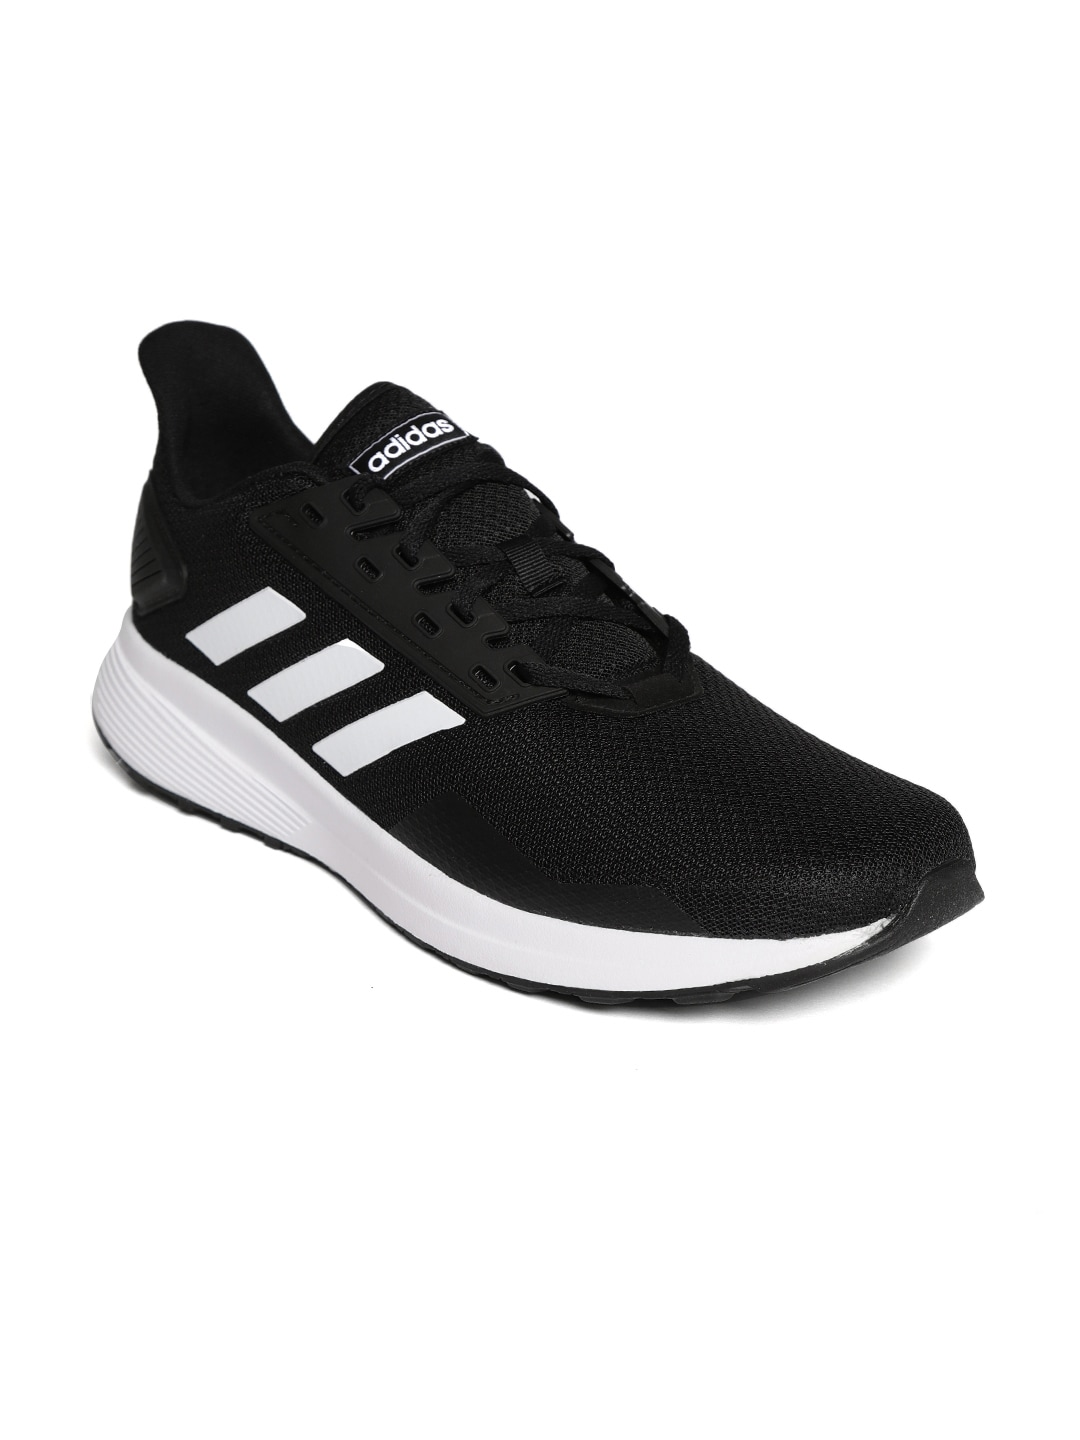 9e50d69456ab81 adidas - Exclusive adidas Online Store in India at Myntra